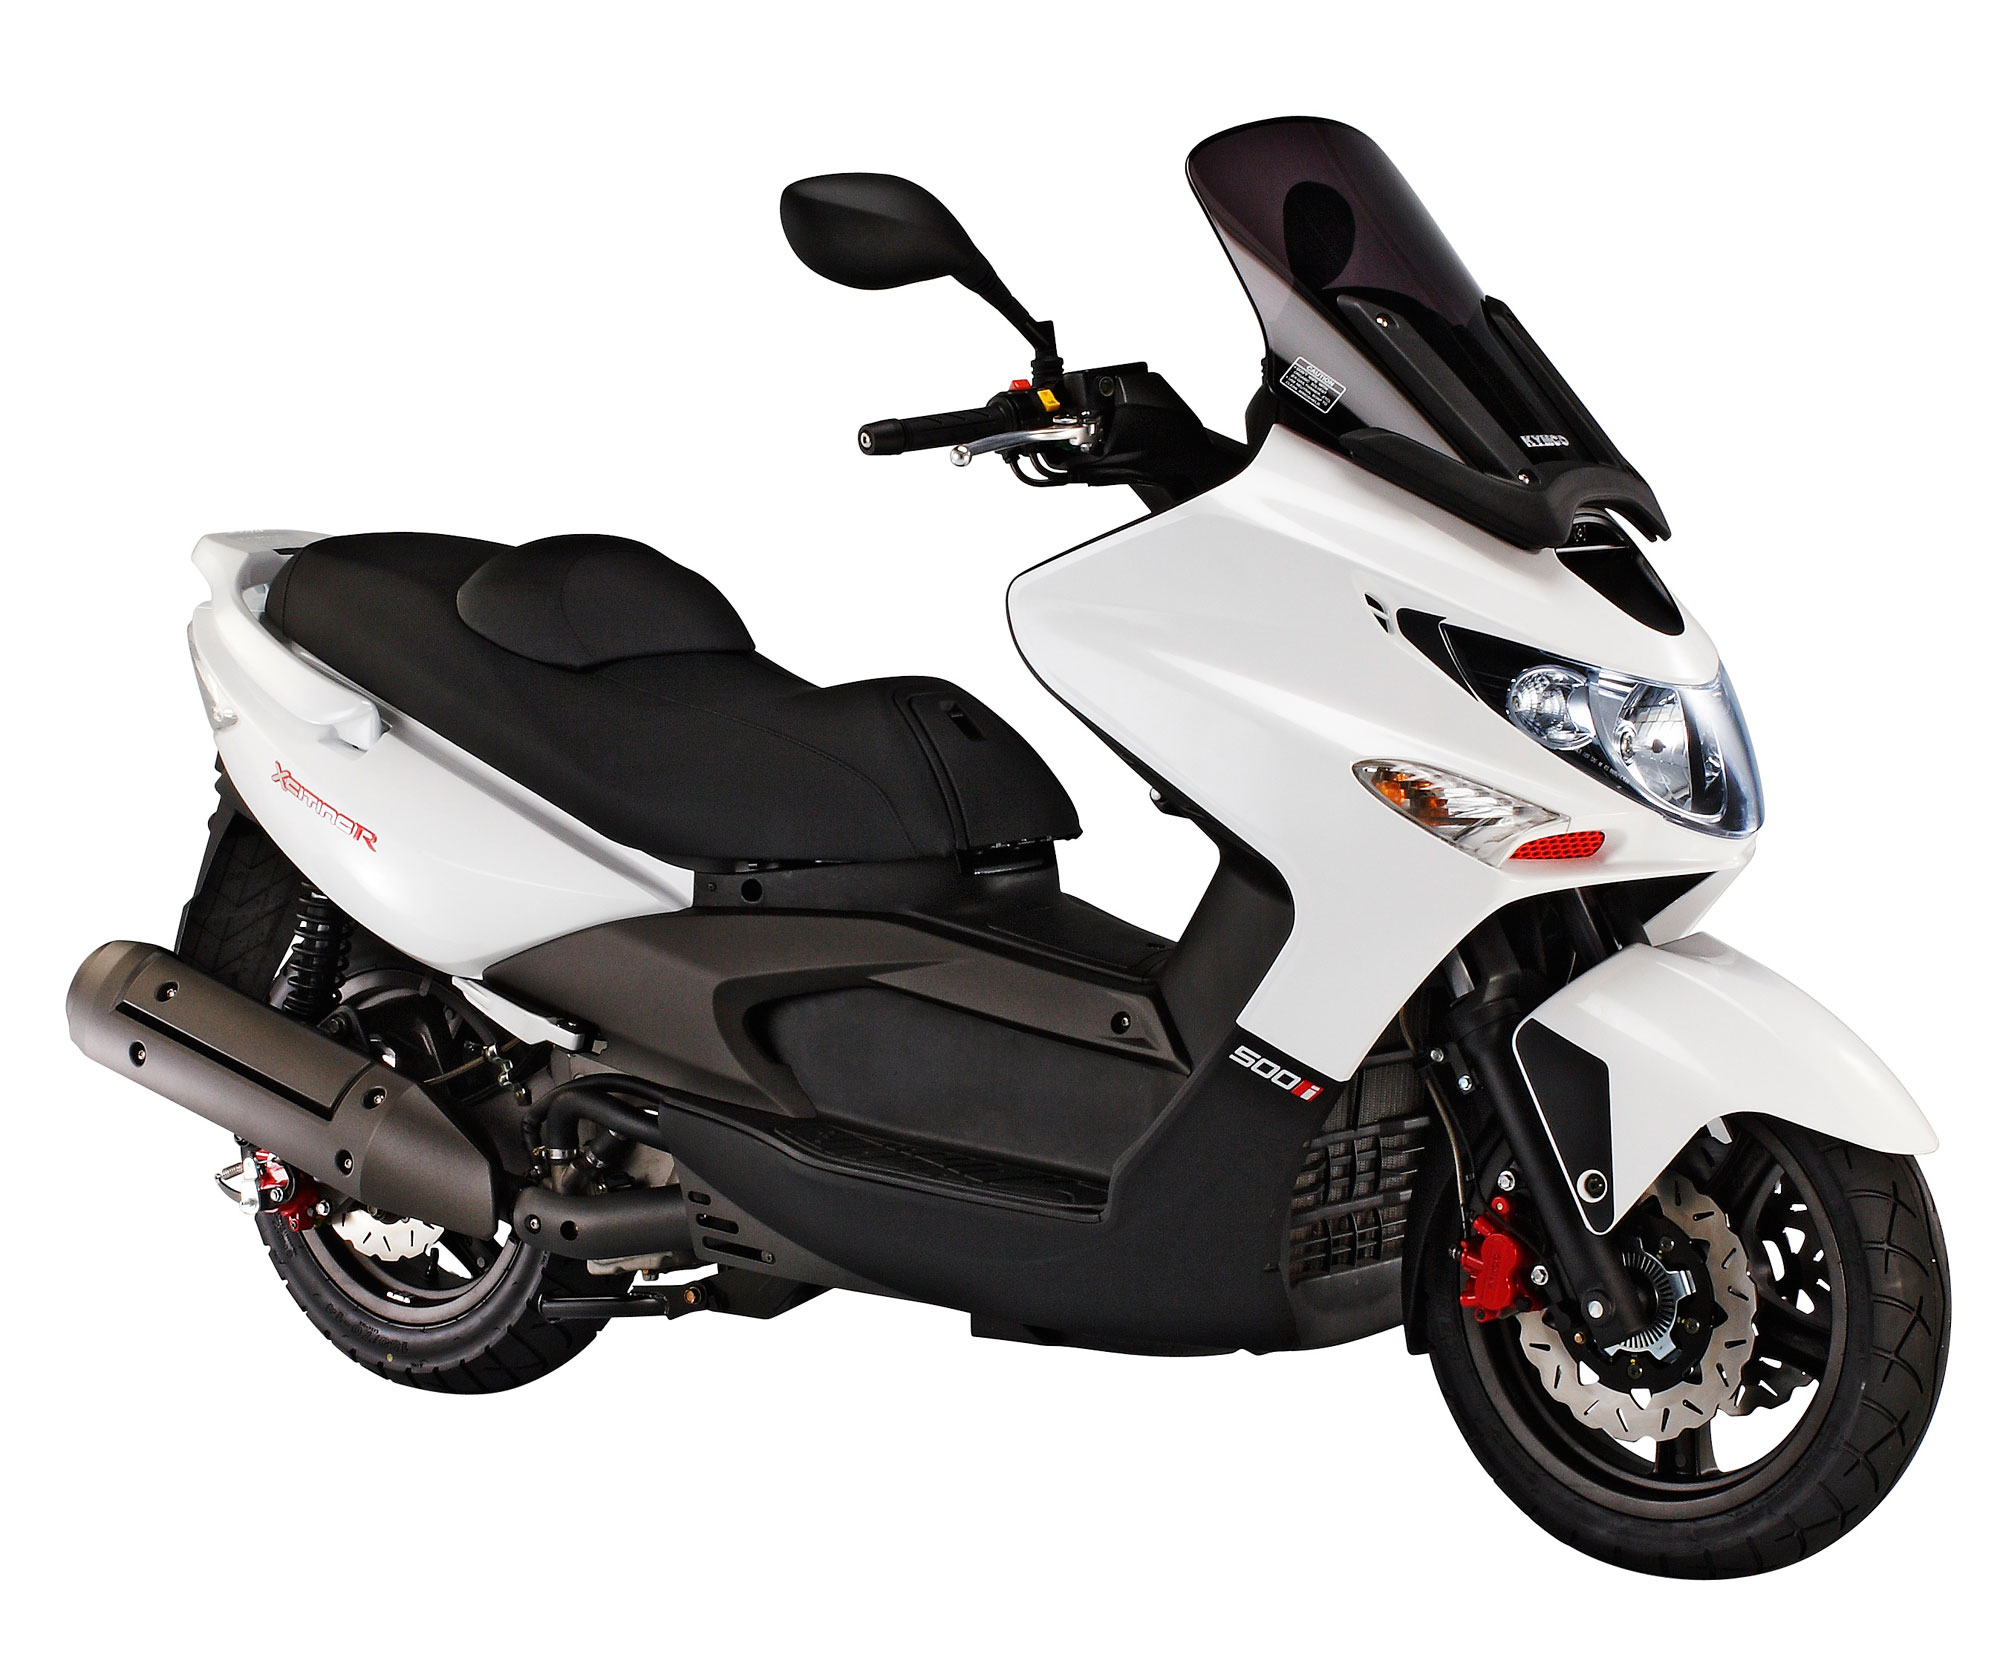 kymco xciting 500 ri abs review gallery top speed. Black Bedroom Furniture Sets. Home Design Ideas